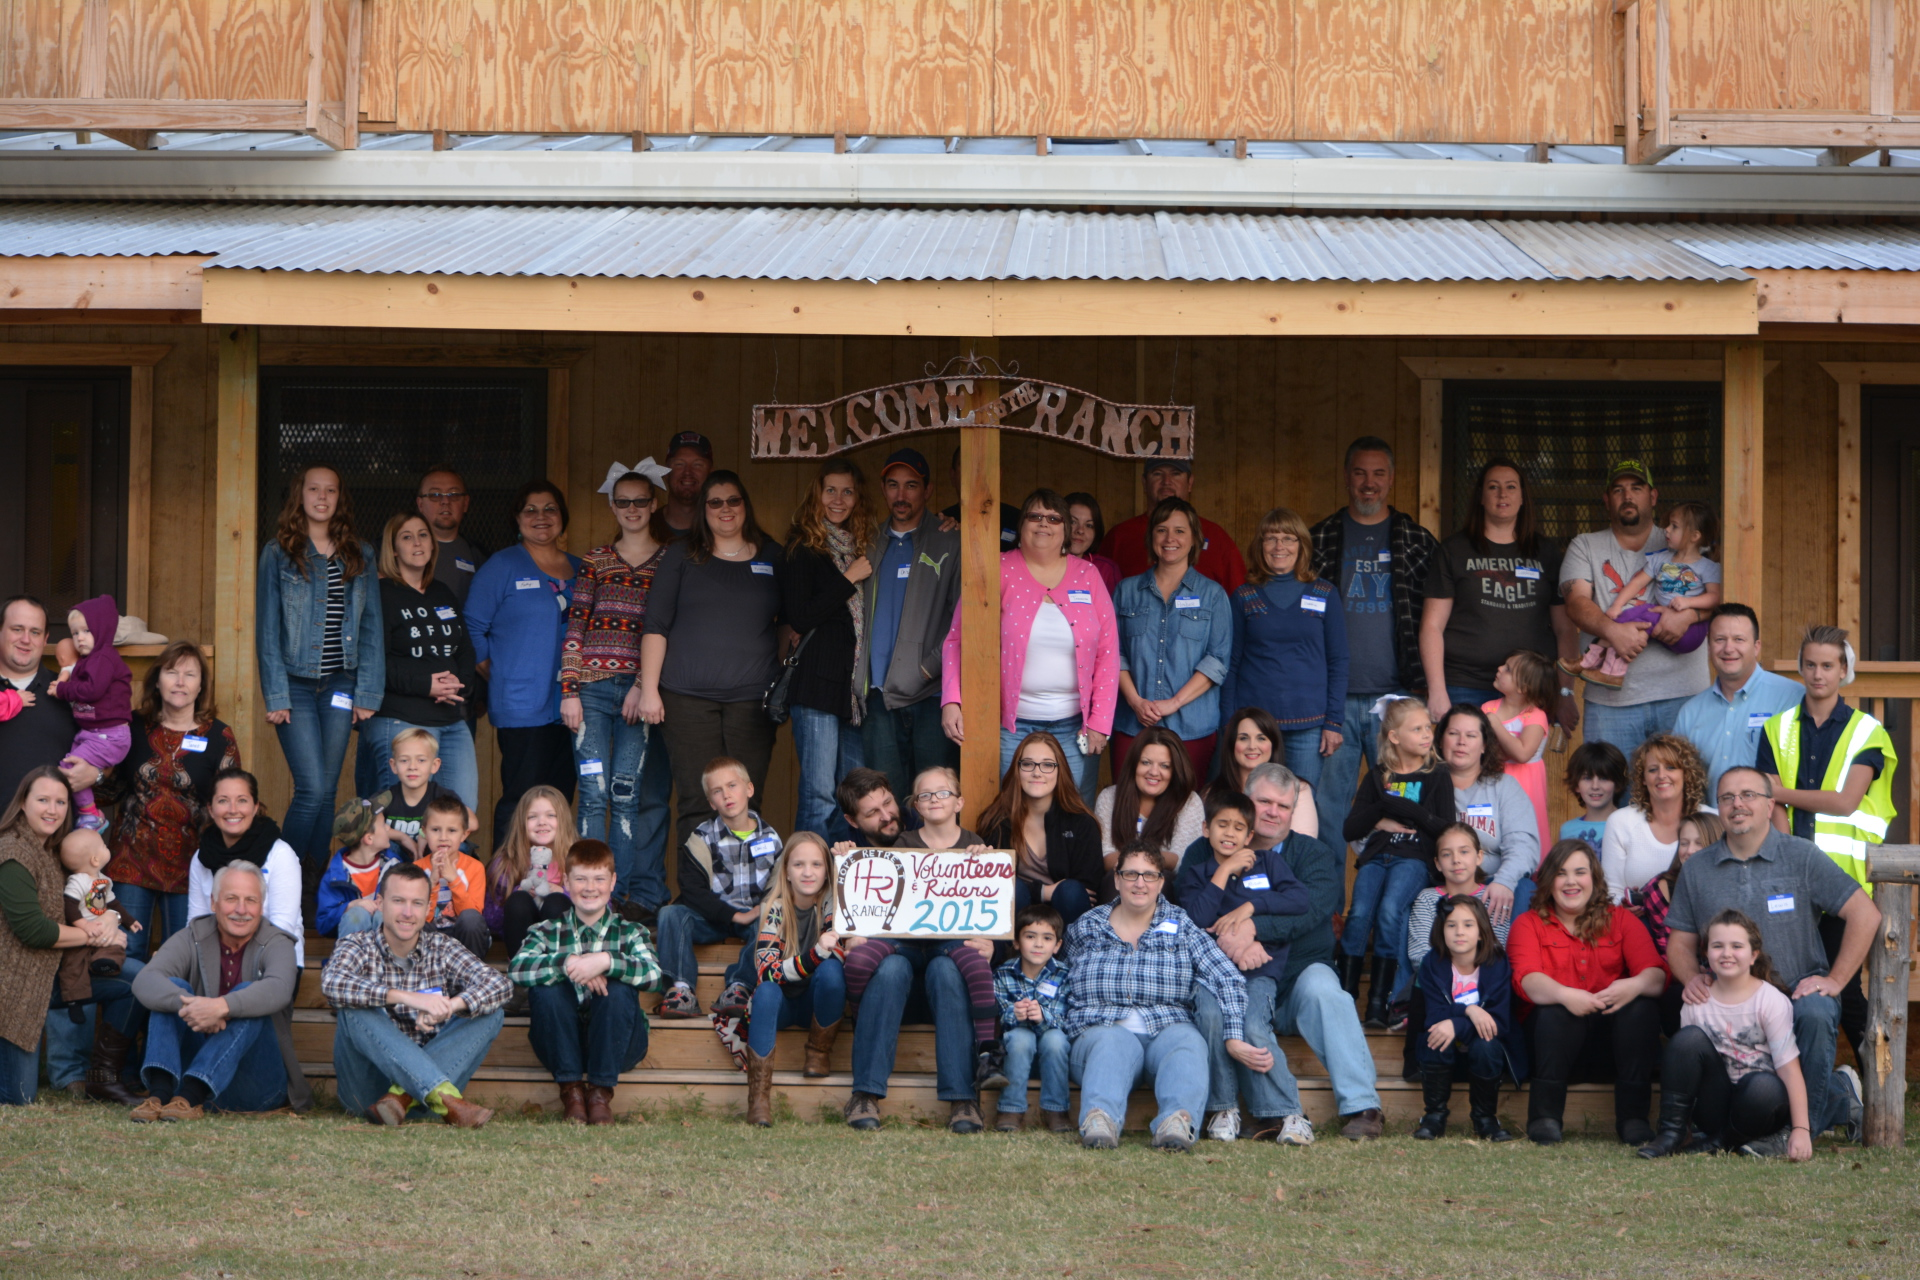 Volunteer: How can YOU make a difference at Hope Retreat Ranch?